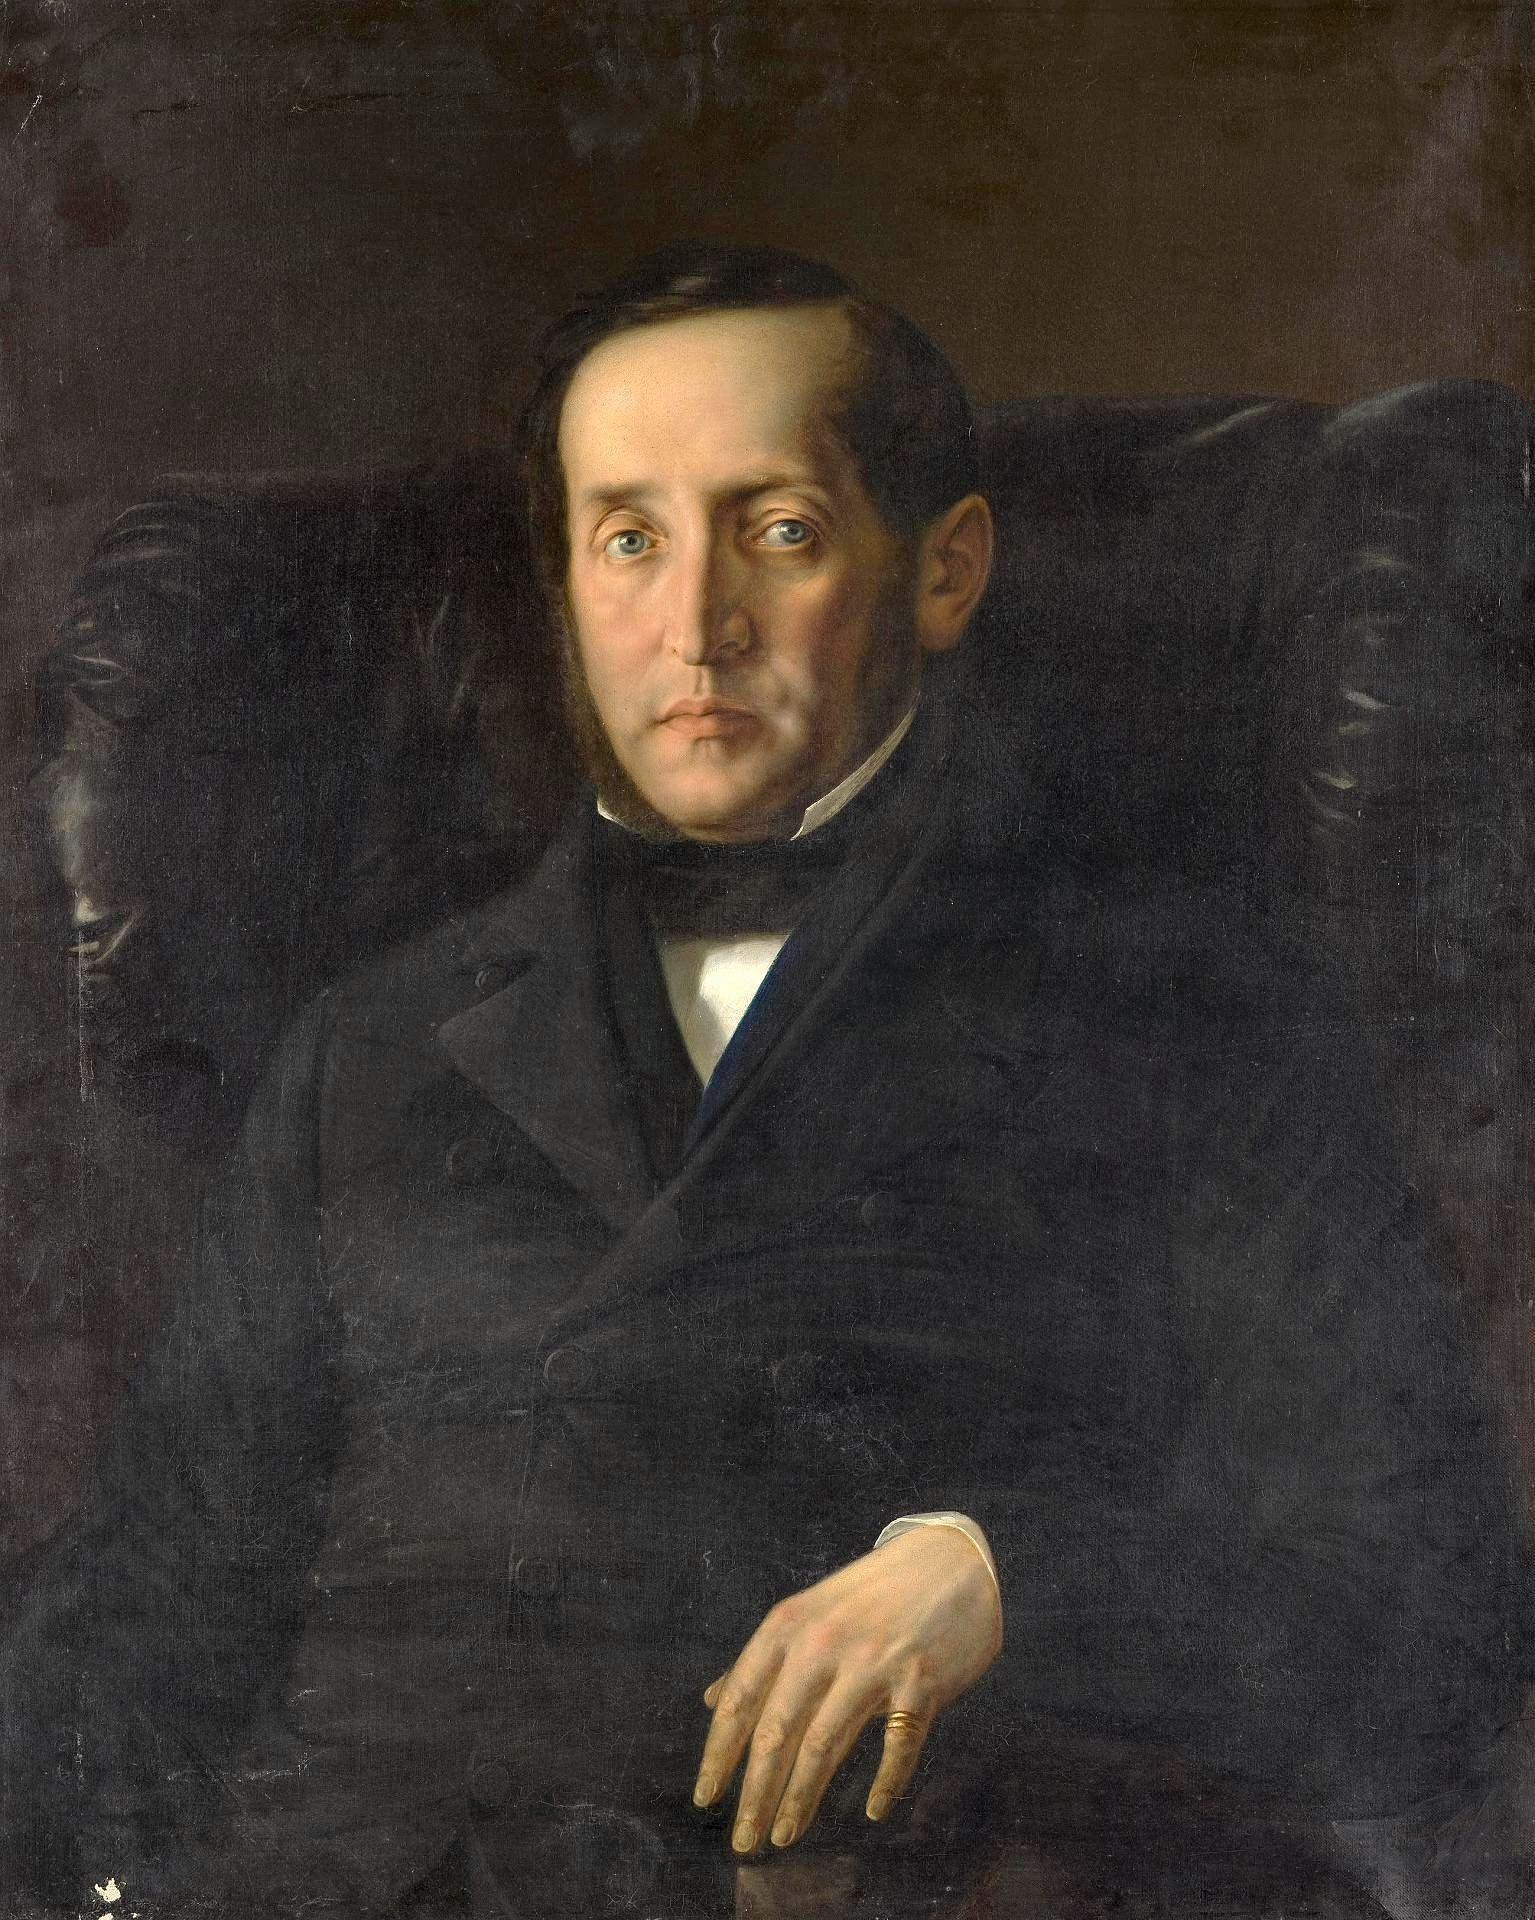 https://upload.wikimedia.org/wikipedia/commons/2/2d/N._D._Zubov.jpg